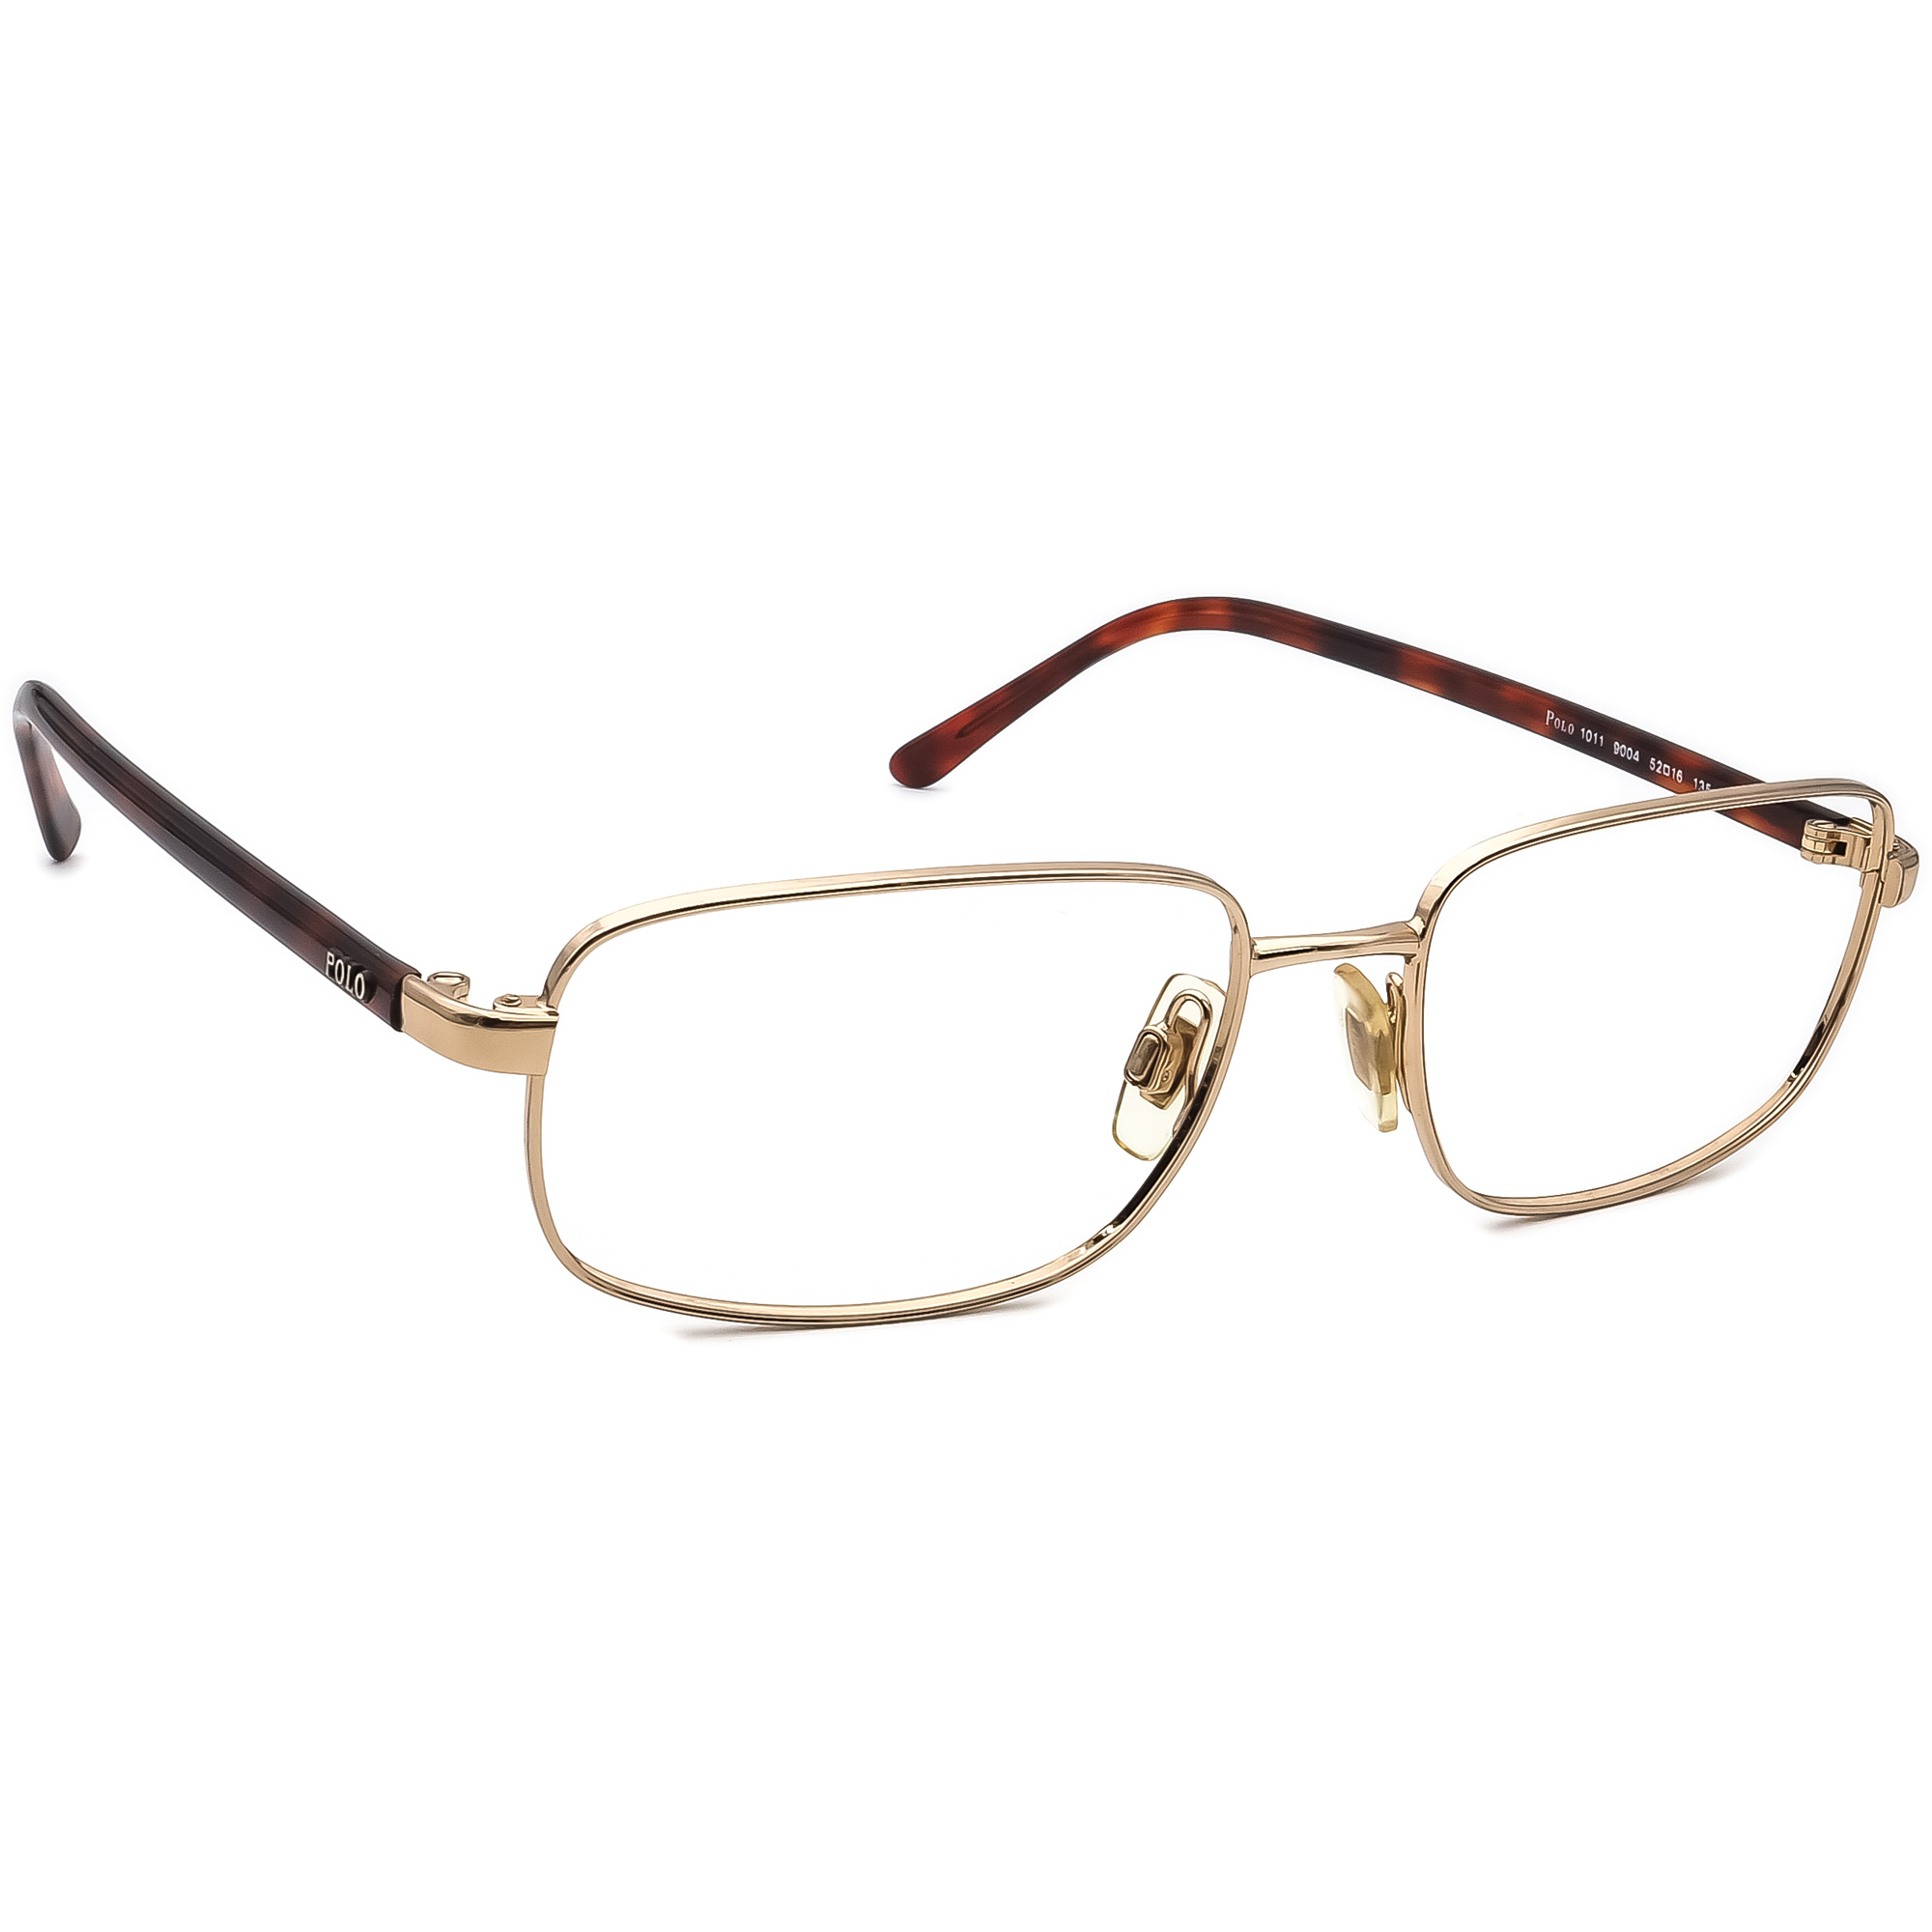 Ralph Lauren Polo 1011 9004 Eyeglasses